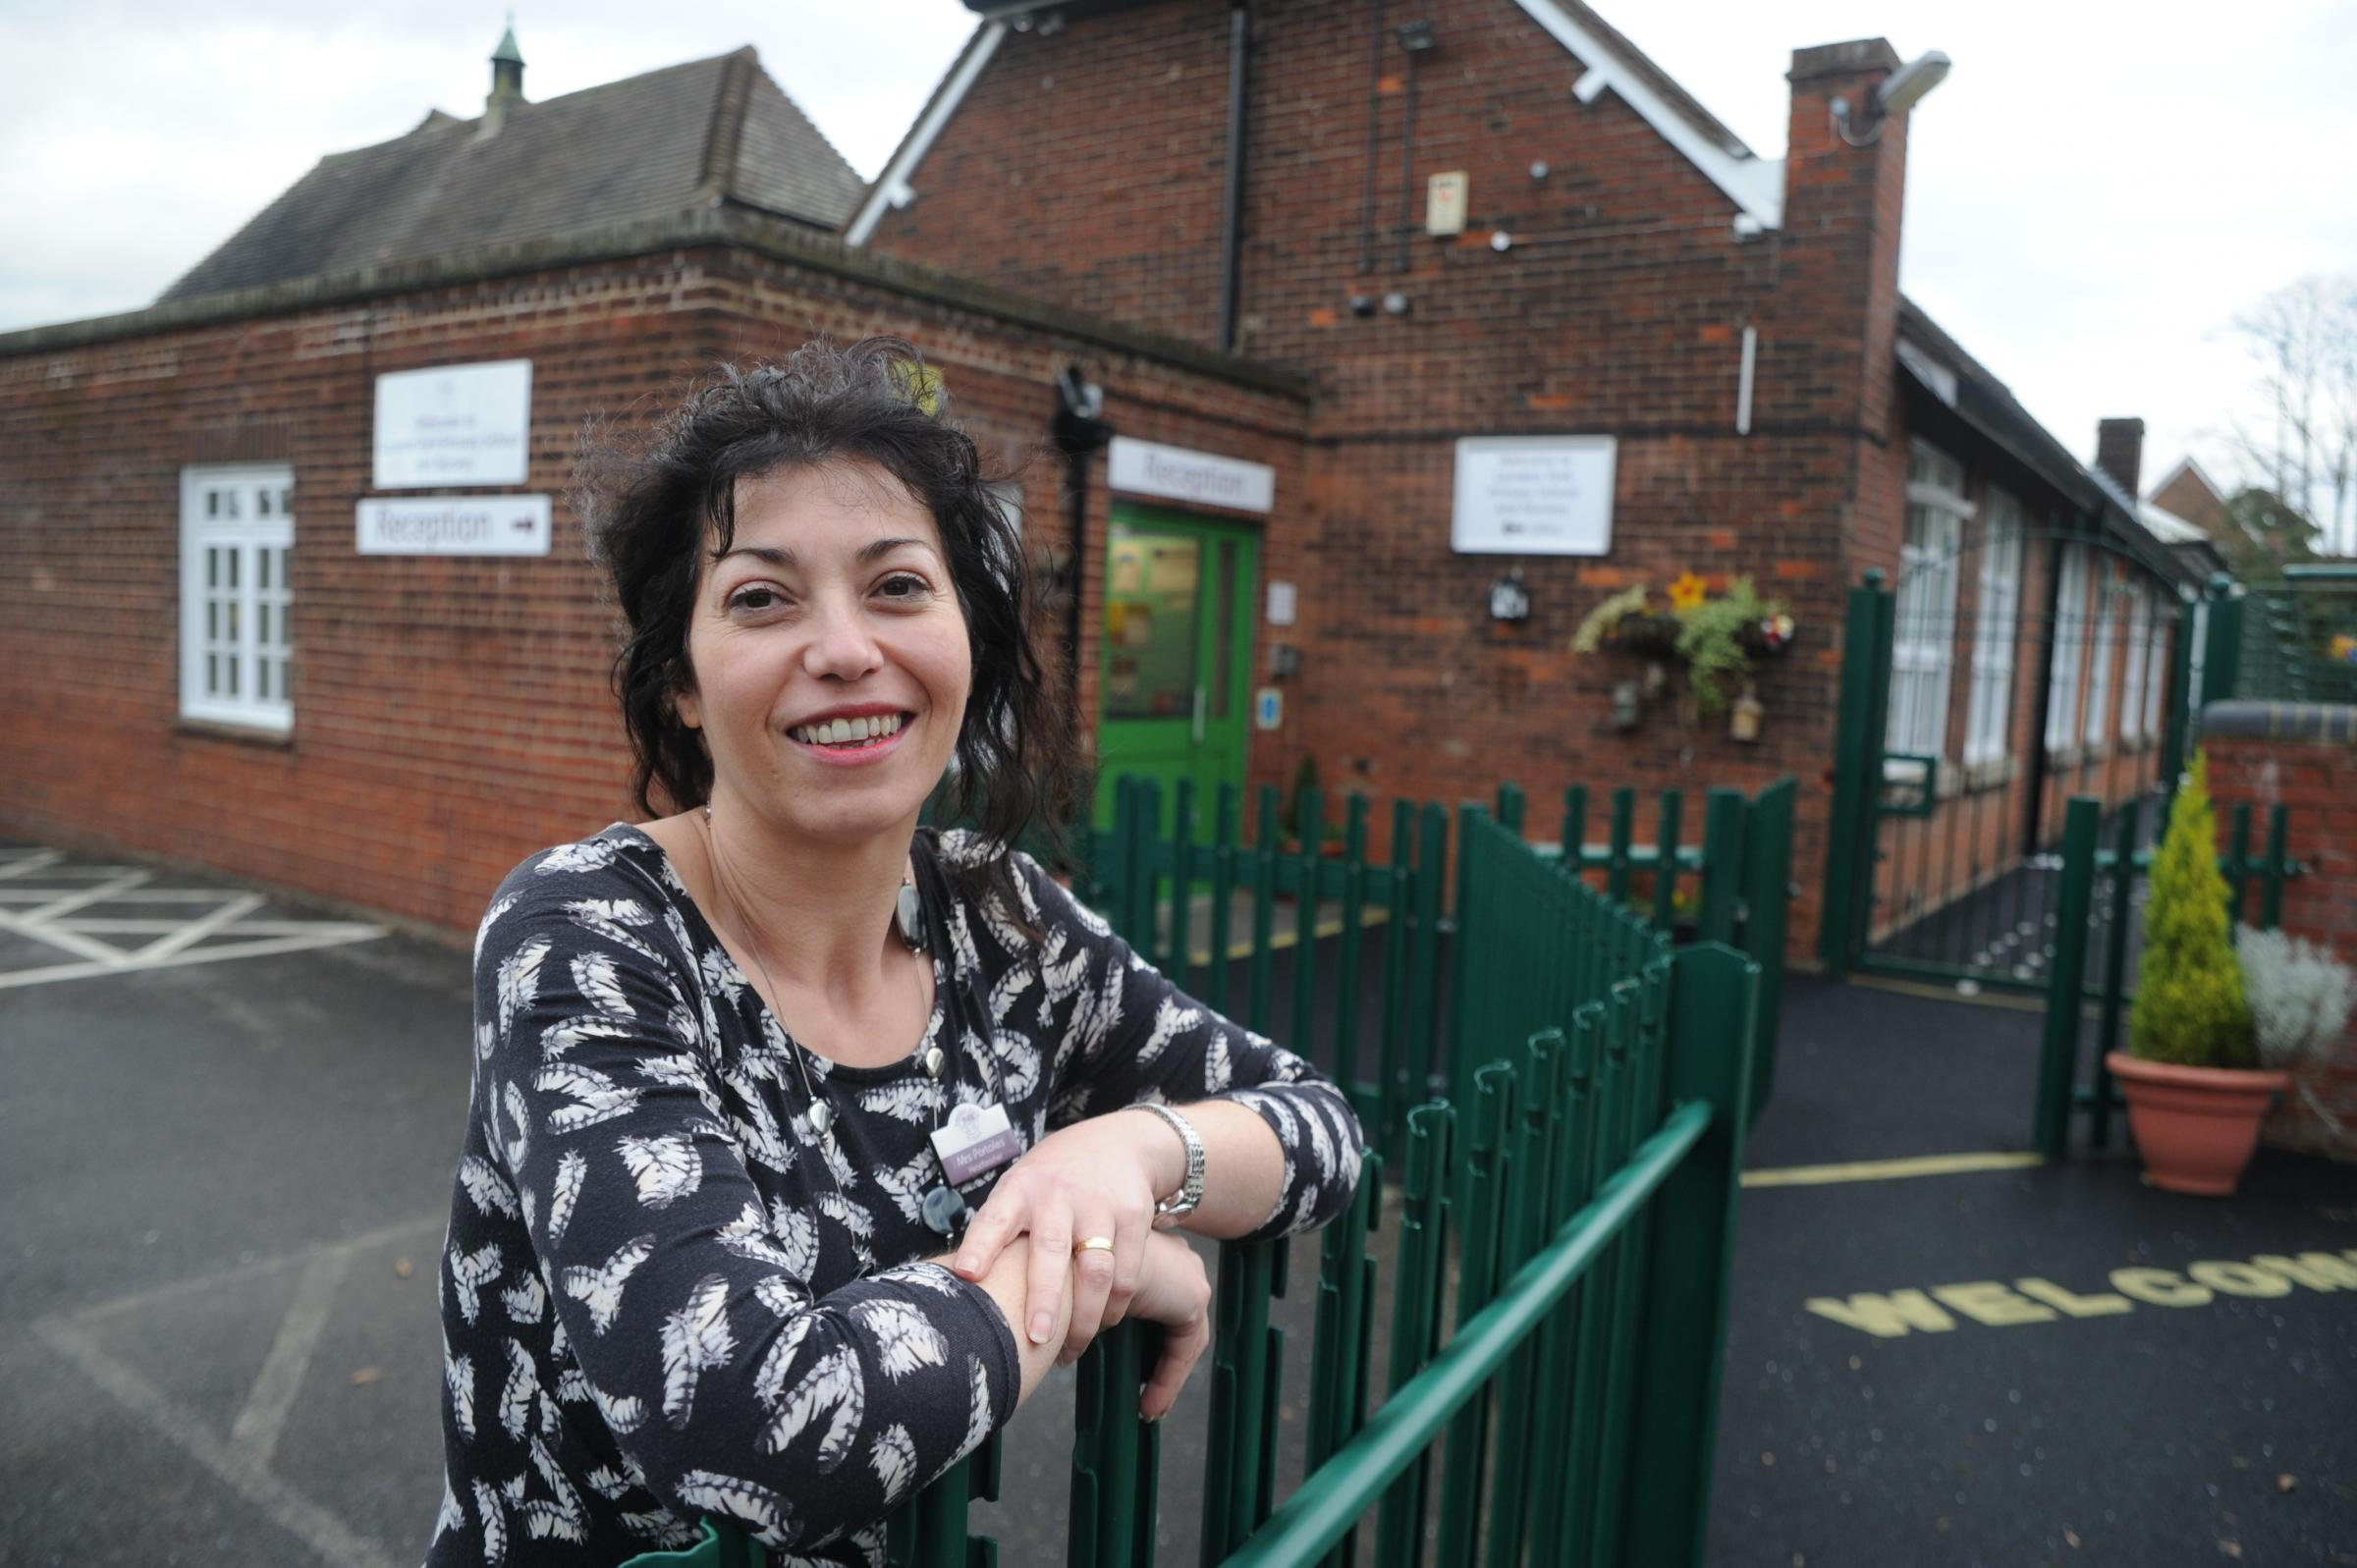 laindon park primary school, church hill, laindon.Cristina Portoles, head at the school. Her school had only one member of staff off in whole of the 2012/13 academic year which is fantastic as some schools had more than 500.Picture: Paul Watson. Date 27.0